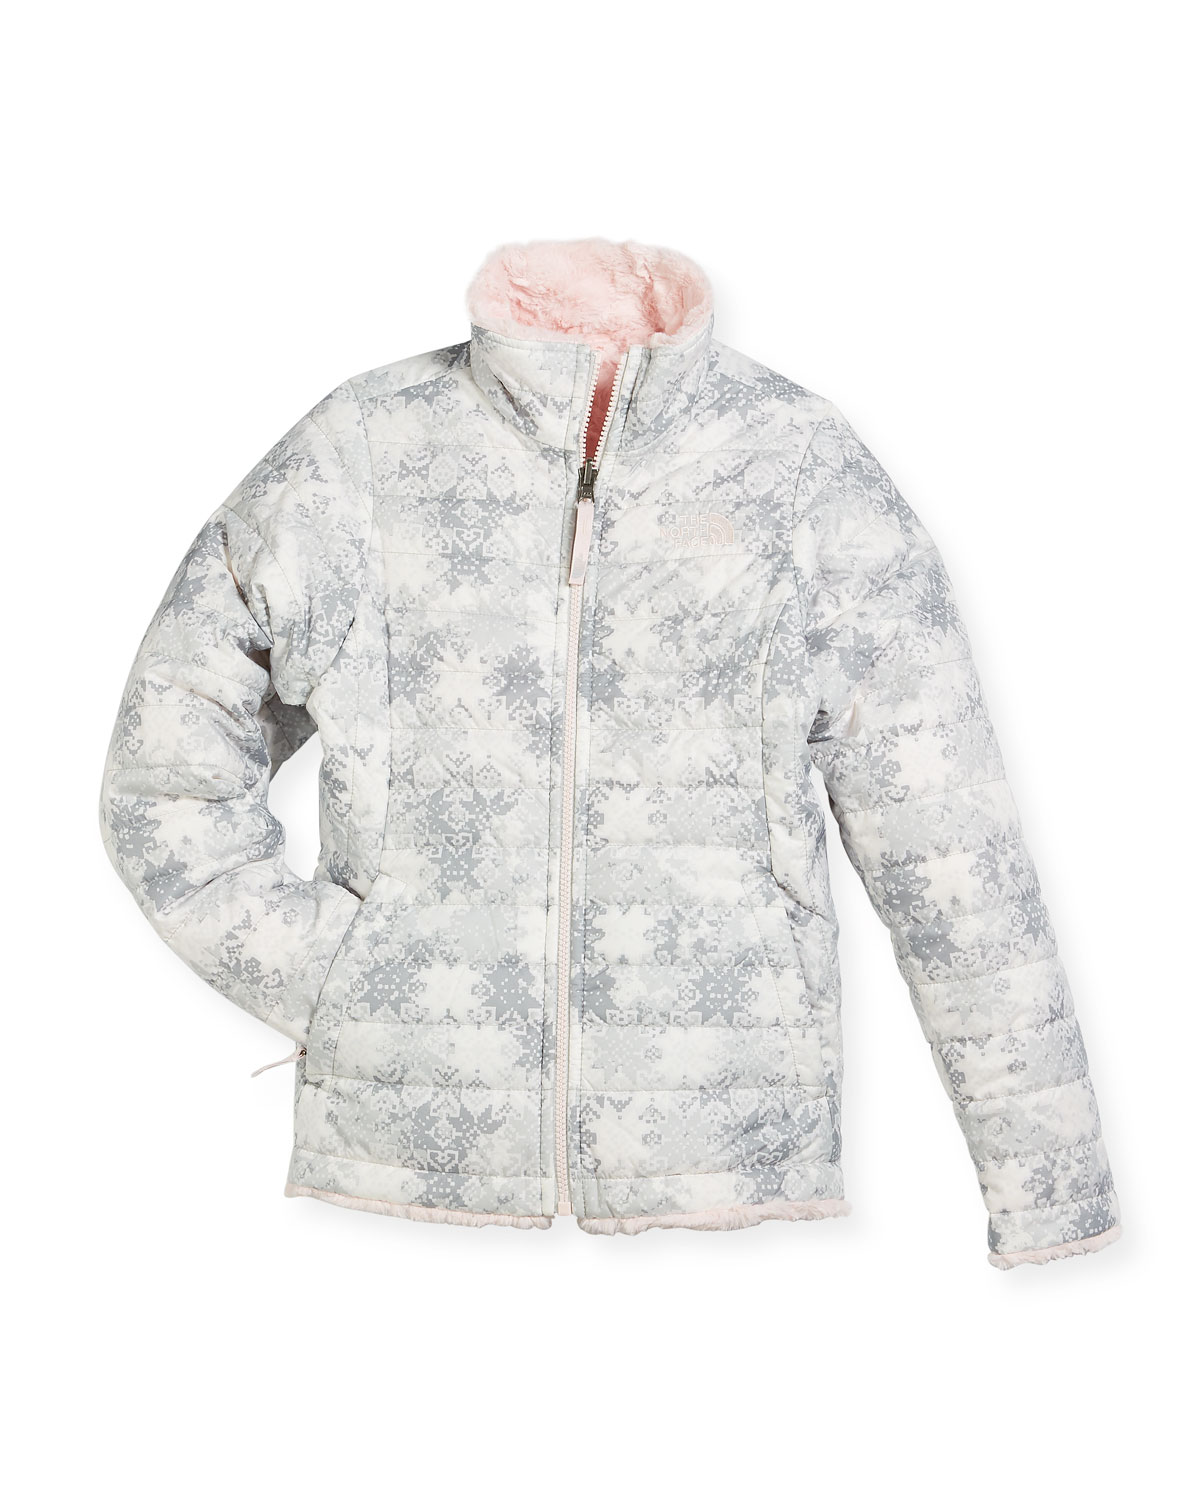 a80e012a4 The North Face Girls  Reversible Mossbud Swirl Jacket